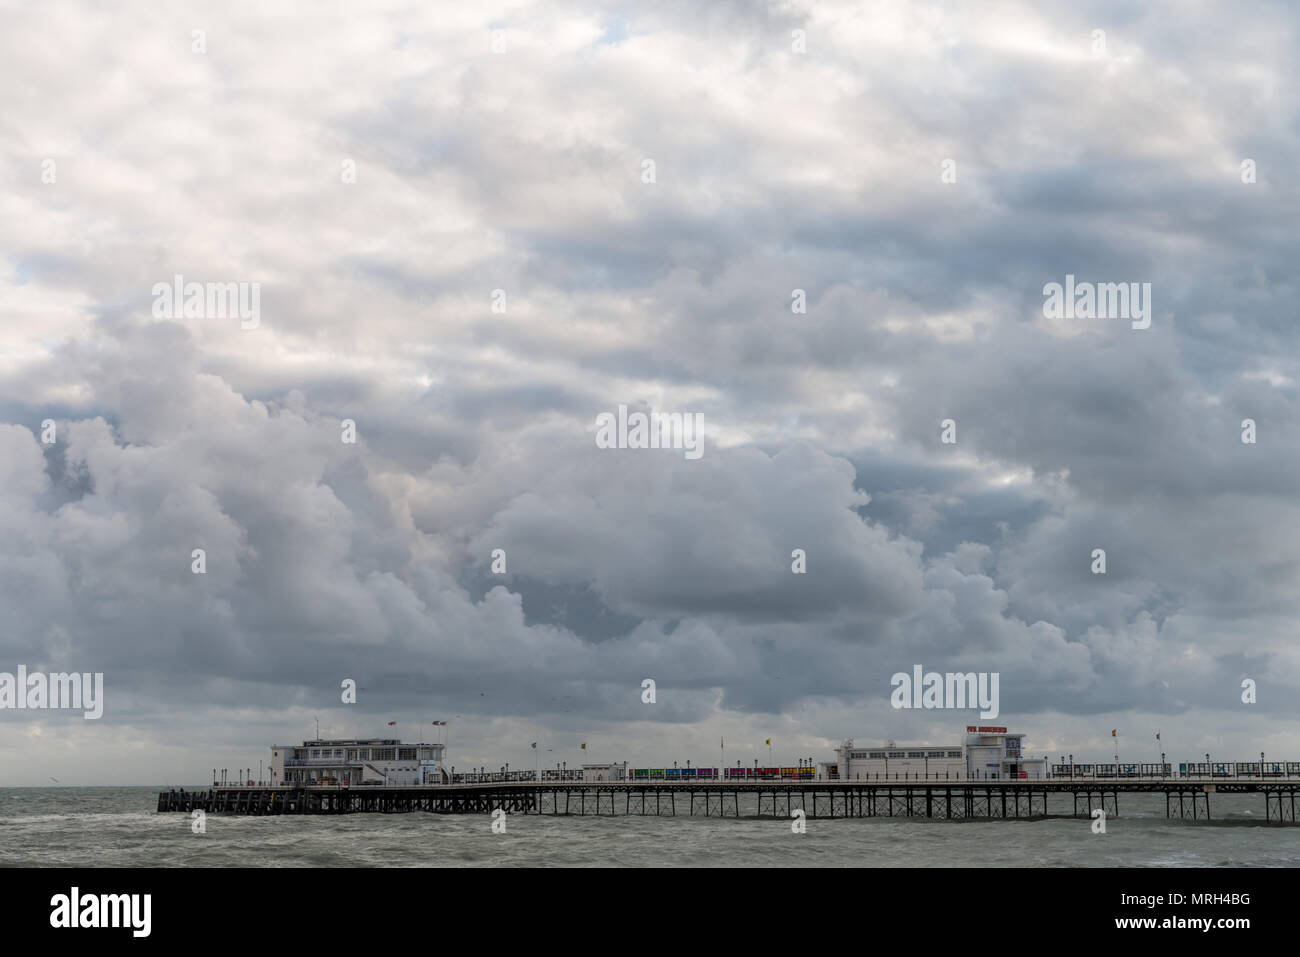 Large dark clouds in the sky above Worthing Pier in Worthing, West Sussex, England, UK. - Stock Image